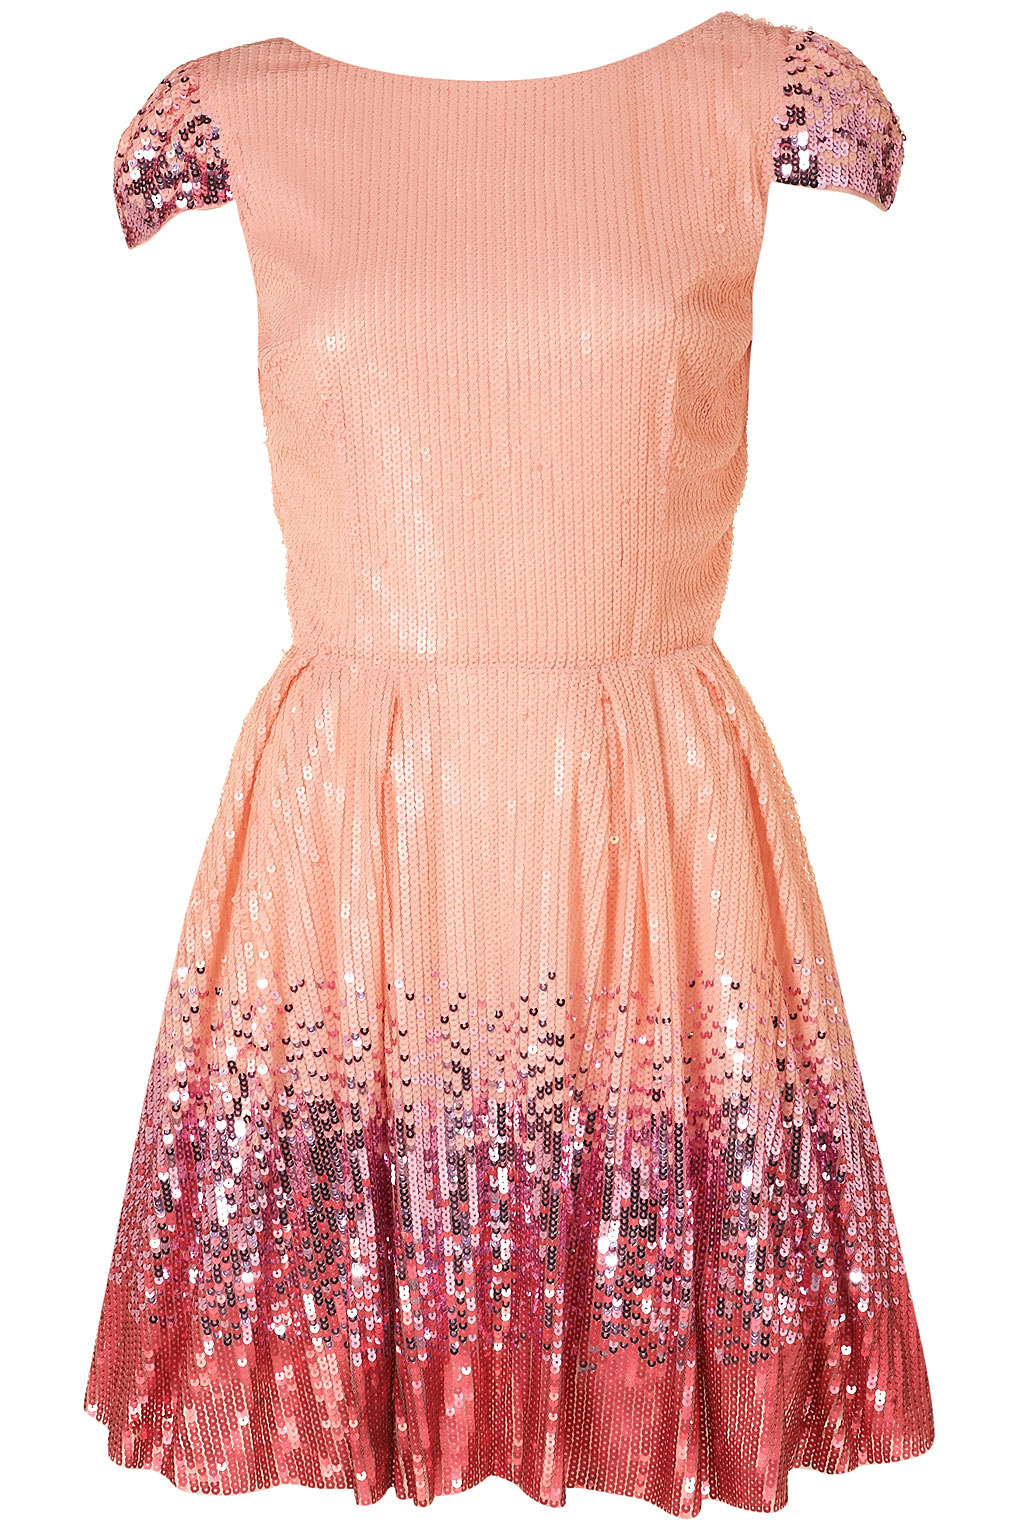 Lyst Topshop Ombre Sequin Prom Dress By Dress Up Topshop